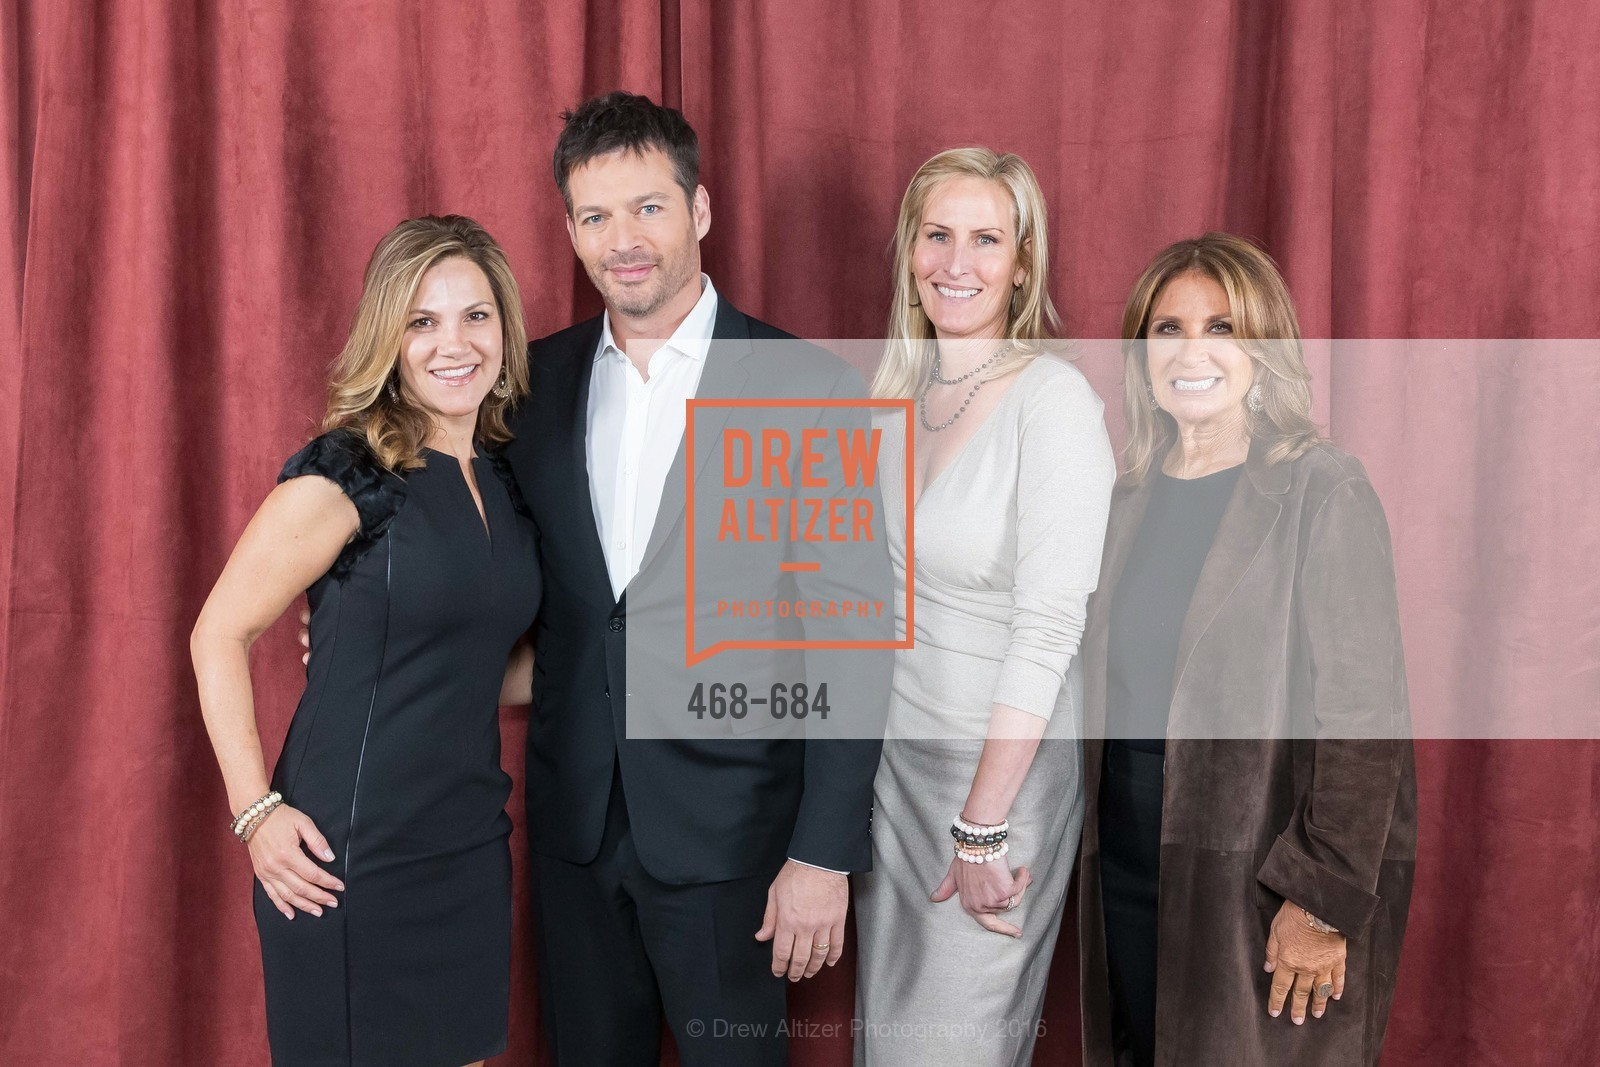 Linda MacDonald, Harry Connick Jr., Sarah Jones, Susie Fox, Under One Umbrella, Sharon Heights Golf and Country Club, January 13th, 2016,Drew Altizer, Drew Altizer Photography, full-service event agency, private events, San Francisco photographer, photographer California